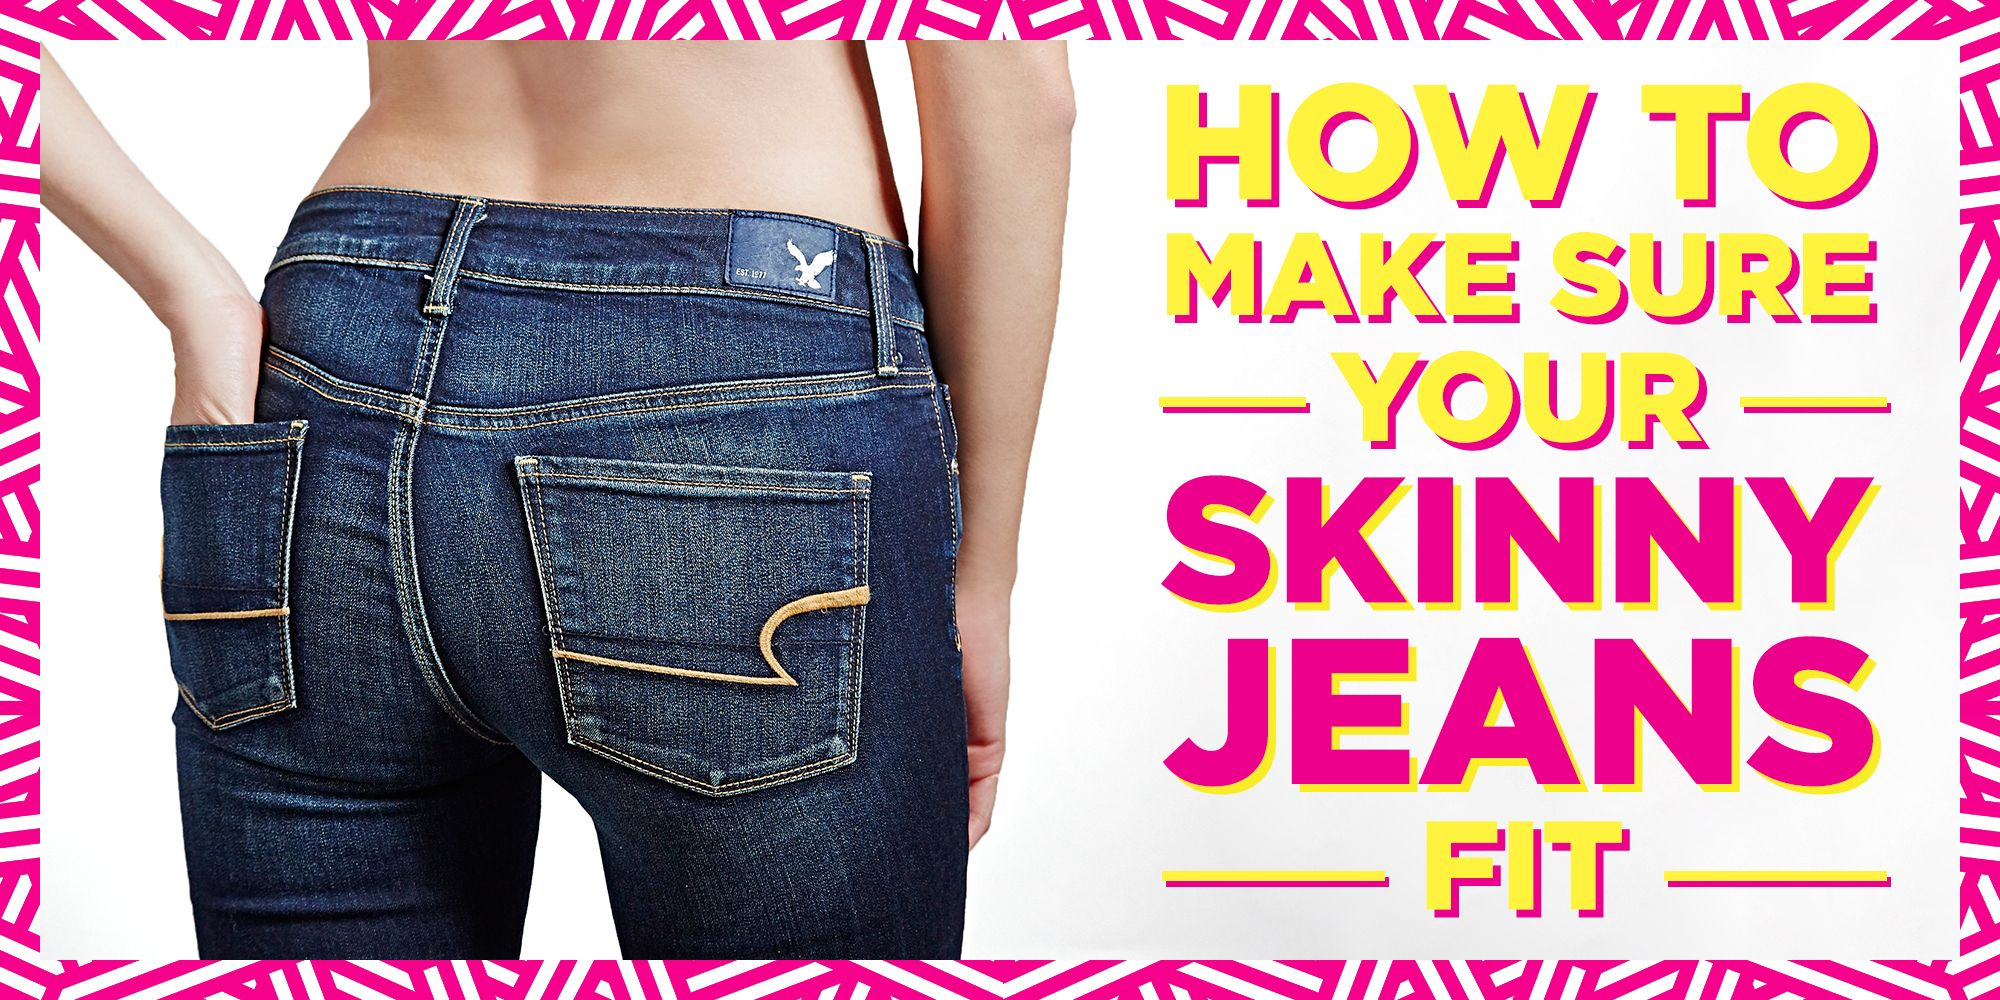 7b7ac9eea2 6 Ways to Make Sure Your Skinny Jeans Fit You Right